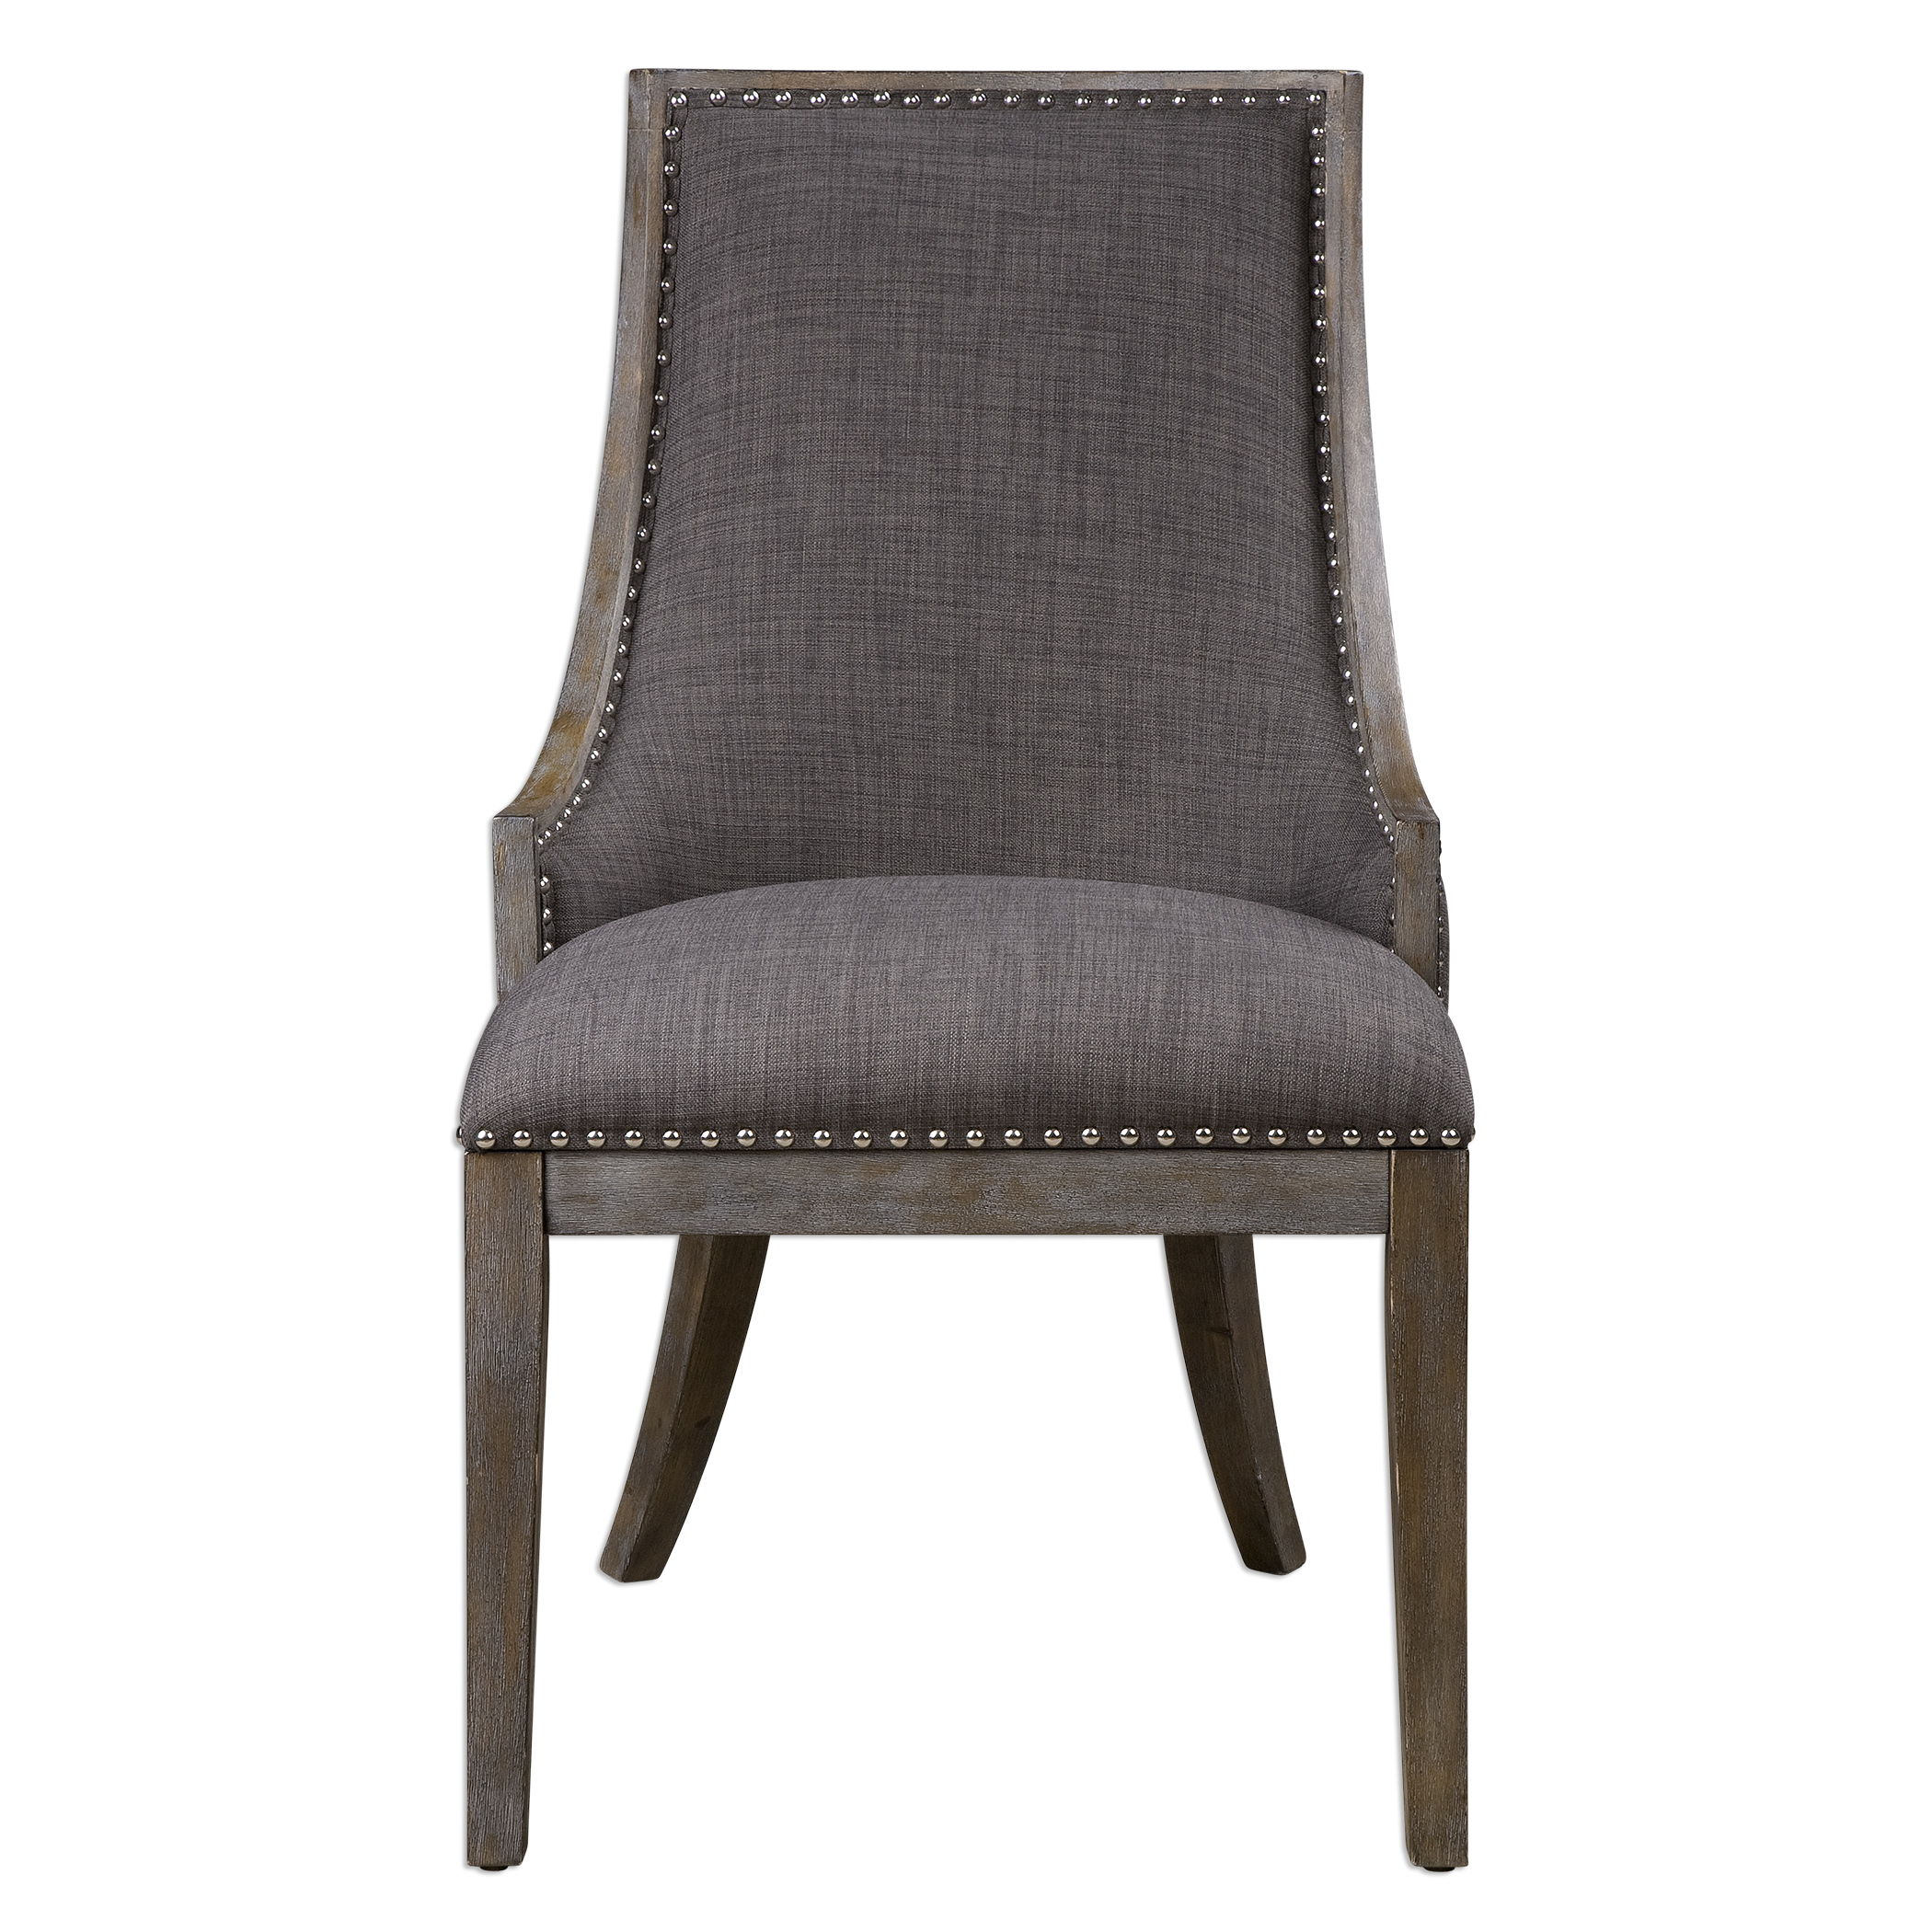 Accent Furniture - Accent Chairs Aidrian Charcoal Gray Accent Chair by Uttermost at Dunk & Bright Furniture